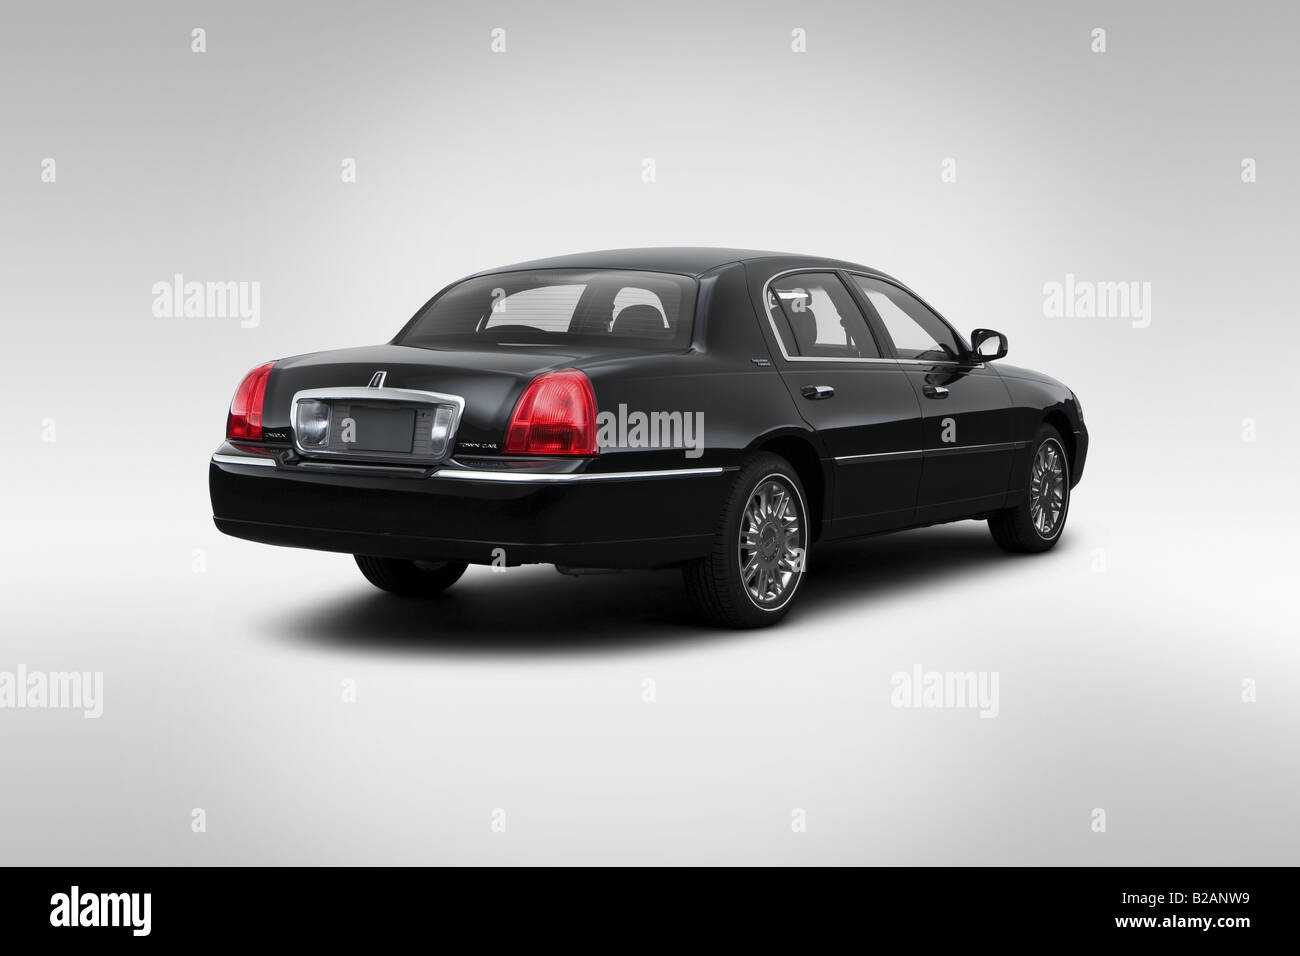 2008 Lincoln Town Car Signature Limited In Black Rear Angle View